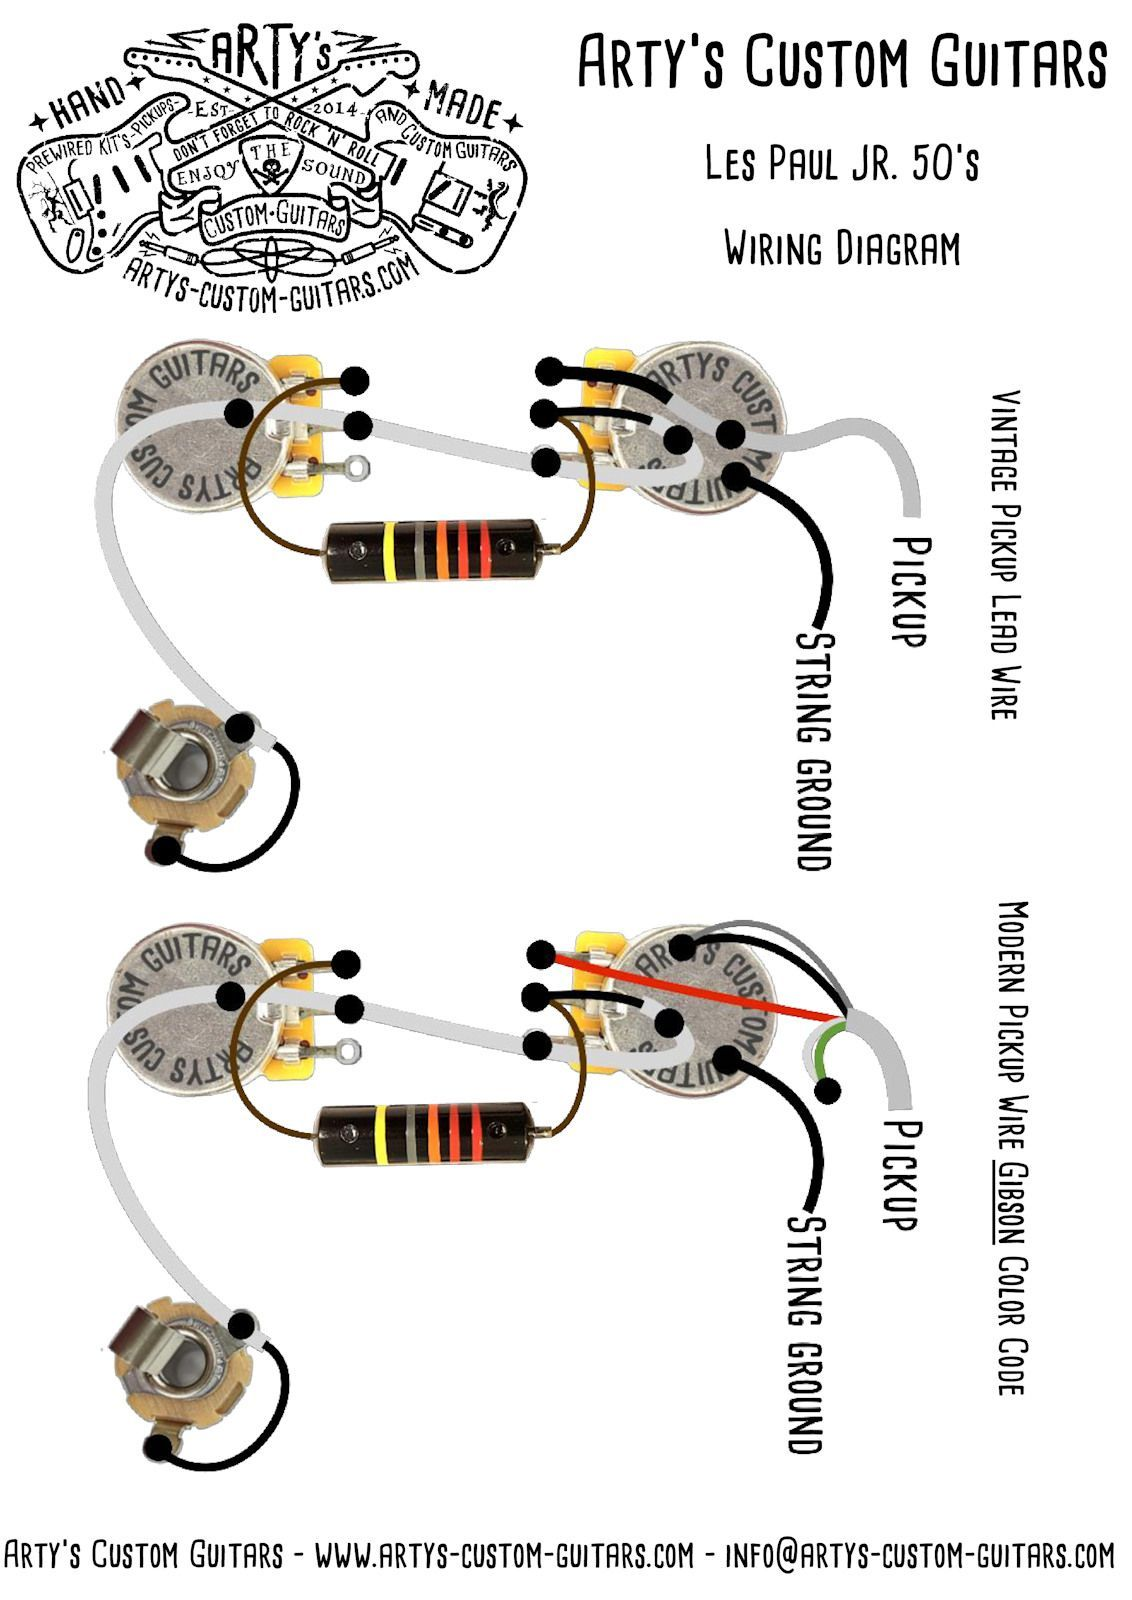 Les Paul Junior Prewired Kit Mit Bumblebee Caps Customguitars Wiring Diagram Les Paul Junior 50 S Prewired Kit Wiring Les Paul Les Paul Jr Gibson Les Paul Jr